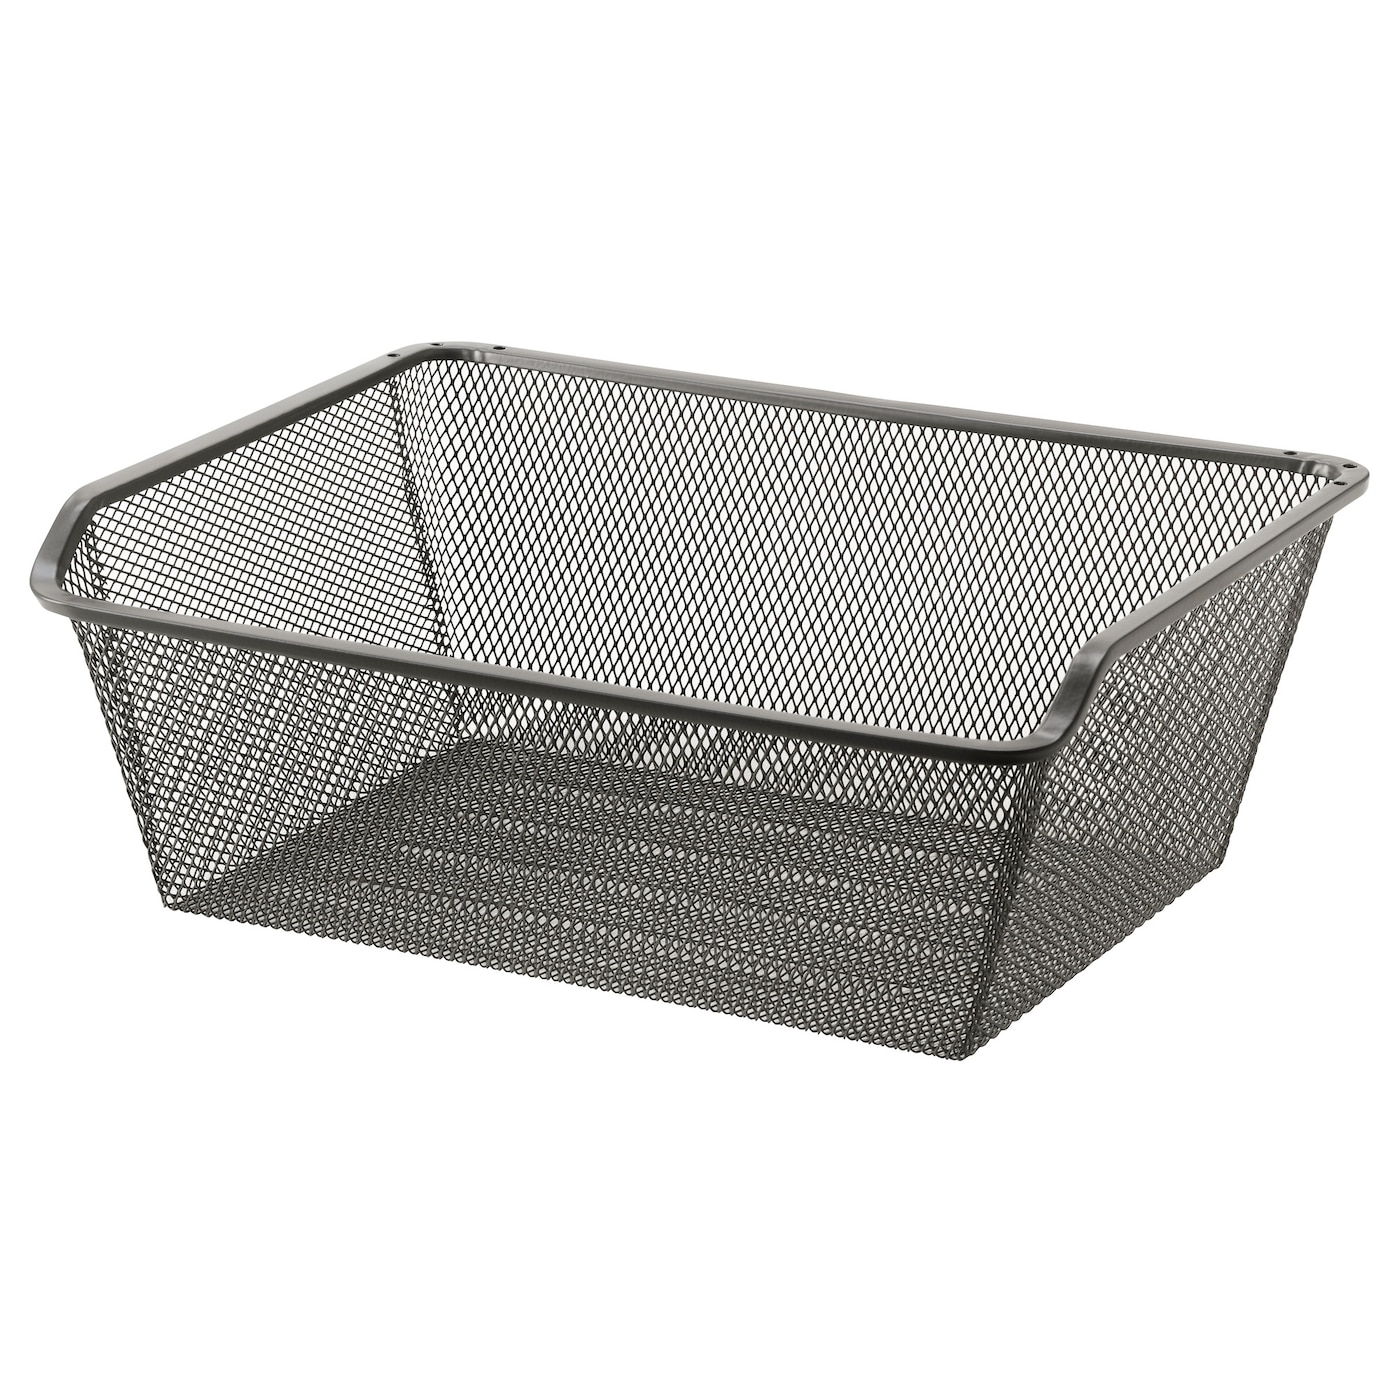 komplement mesh basket with pull out rail dark grey 50x35 cm ikea. Black Bedroom Furniture Sets. Home Design Ideas